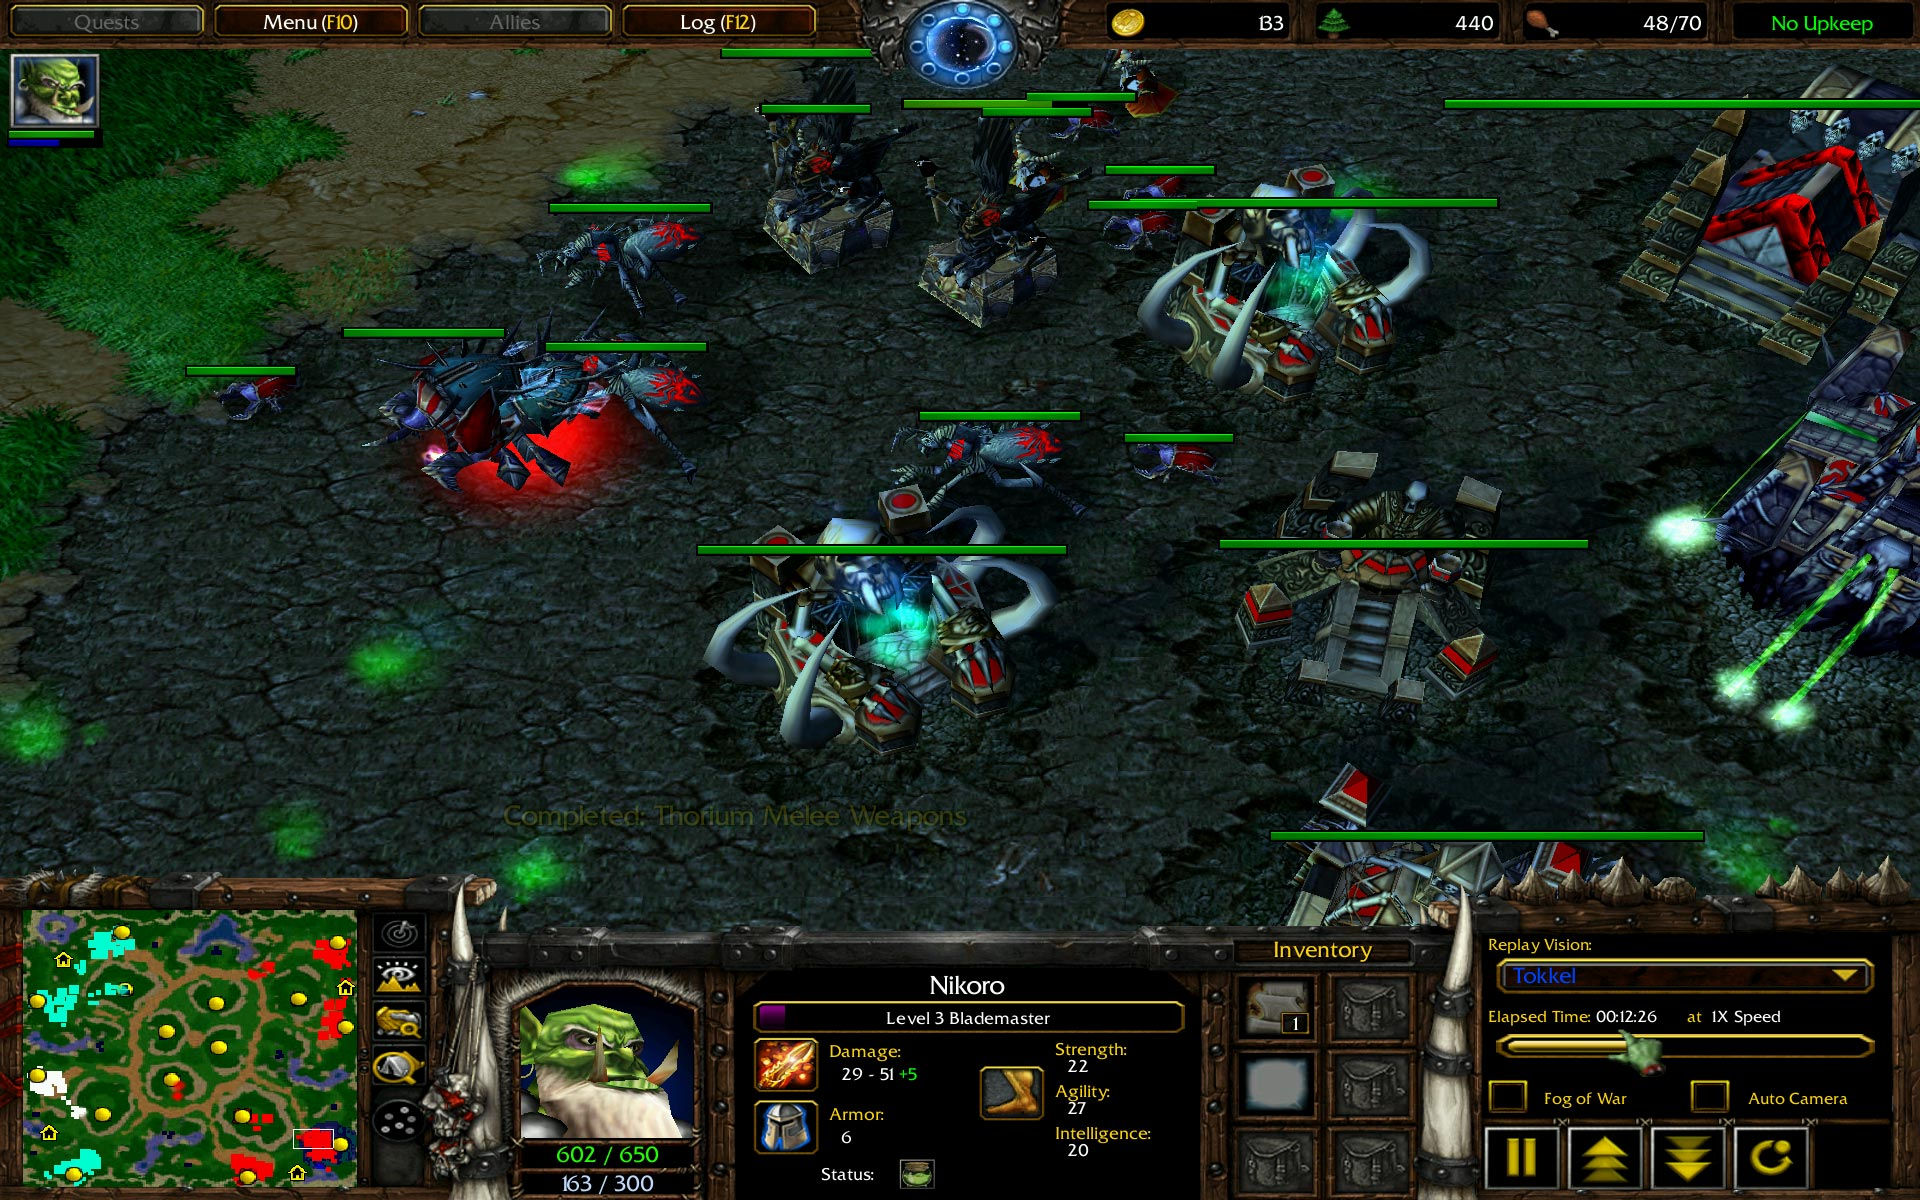 warcraft-3-undead-base-screenshot-cryptlord